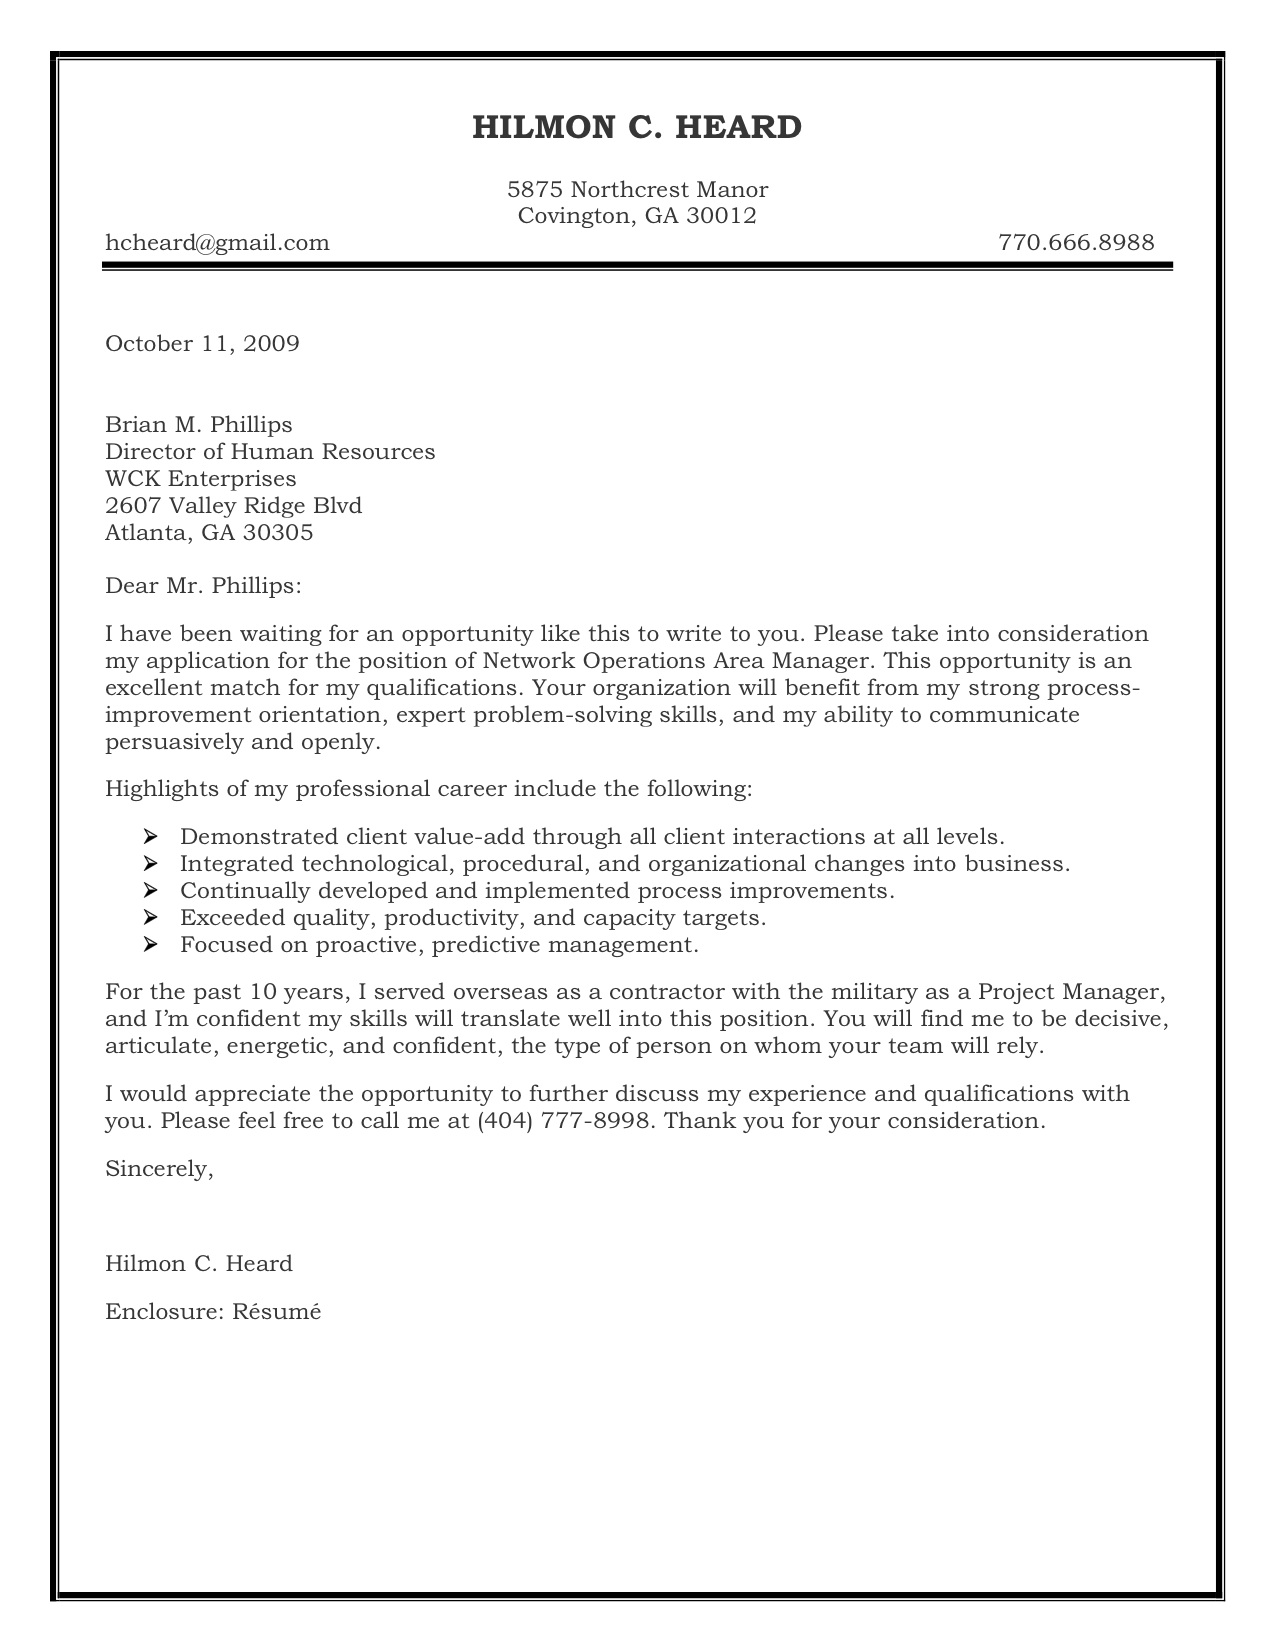 Example Reference Letter For Work Experience Cover Letter Templates Job And Resume  Template  Example Of Job Cover Letter For Resume